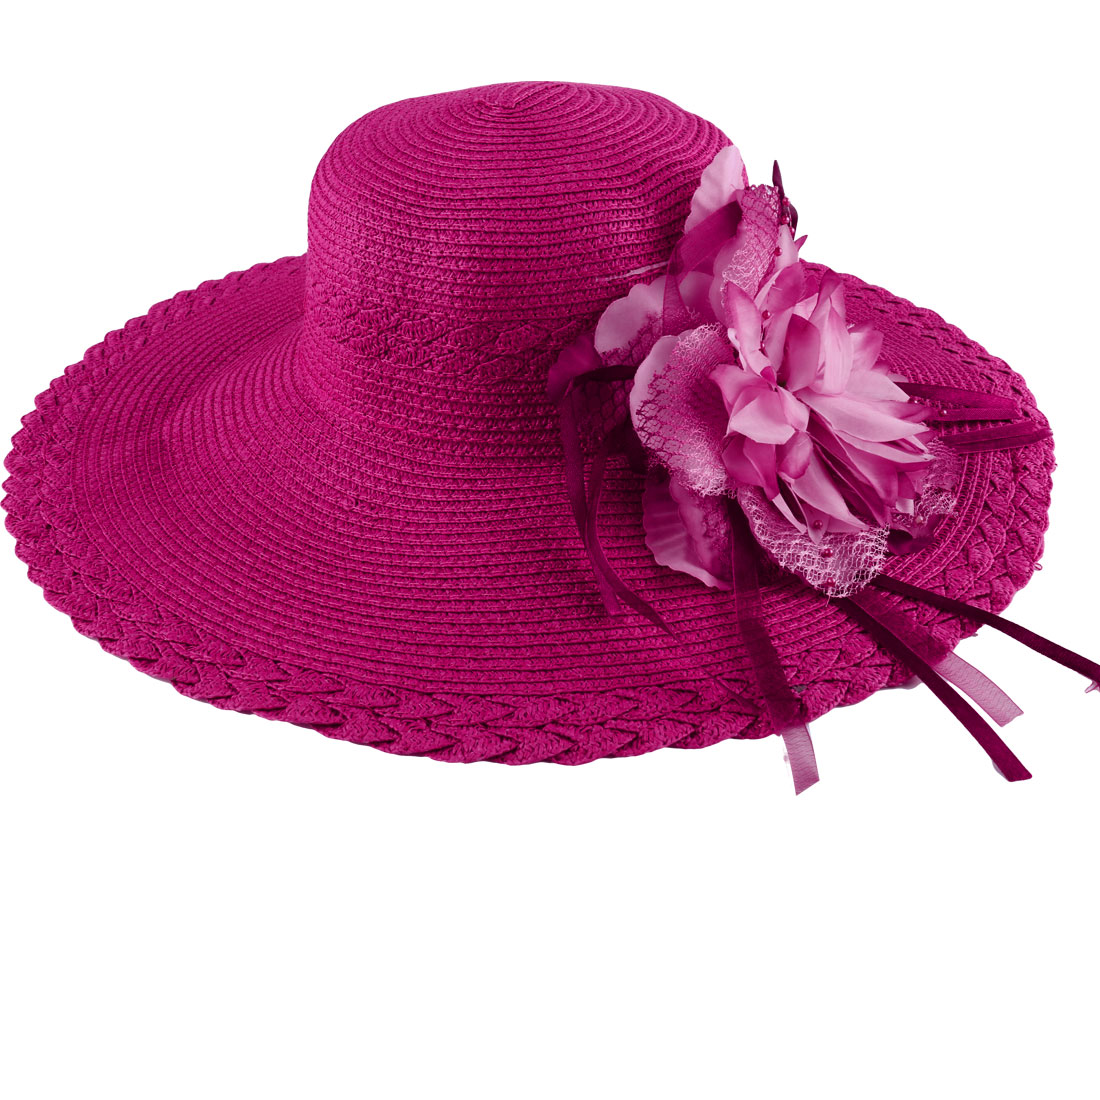 Ladies Braid Flower Embellished Beach Sun Hat Fuchsia